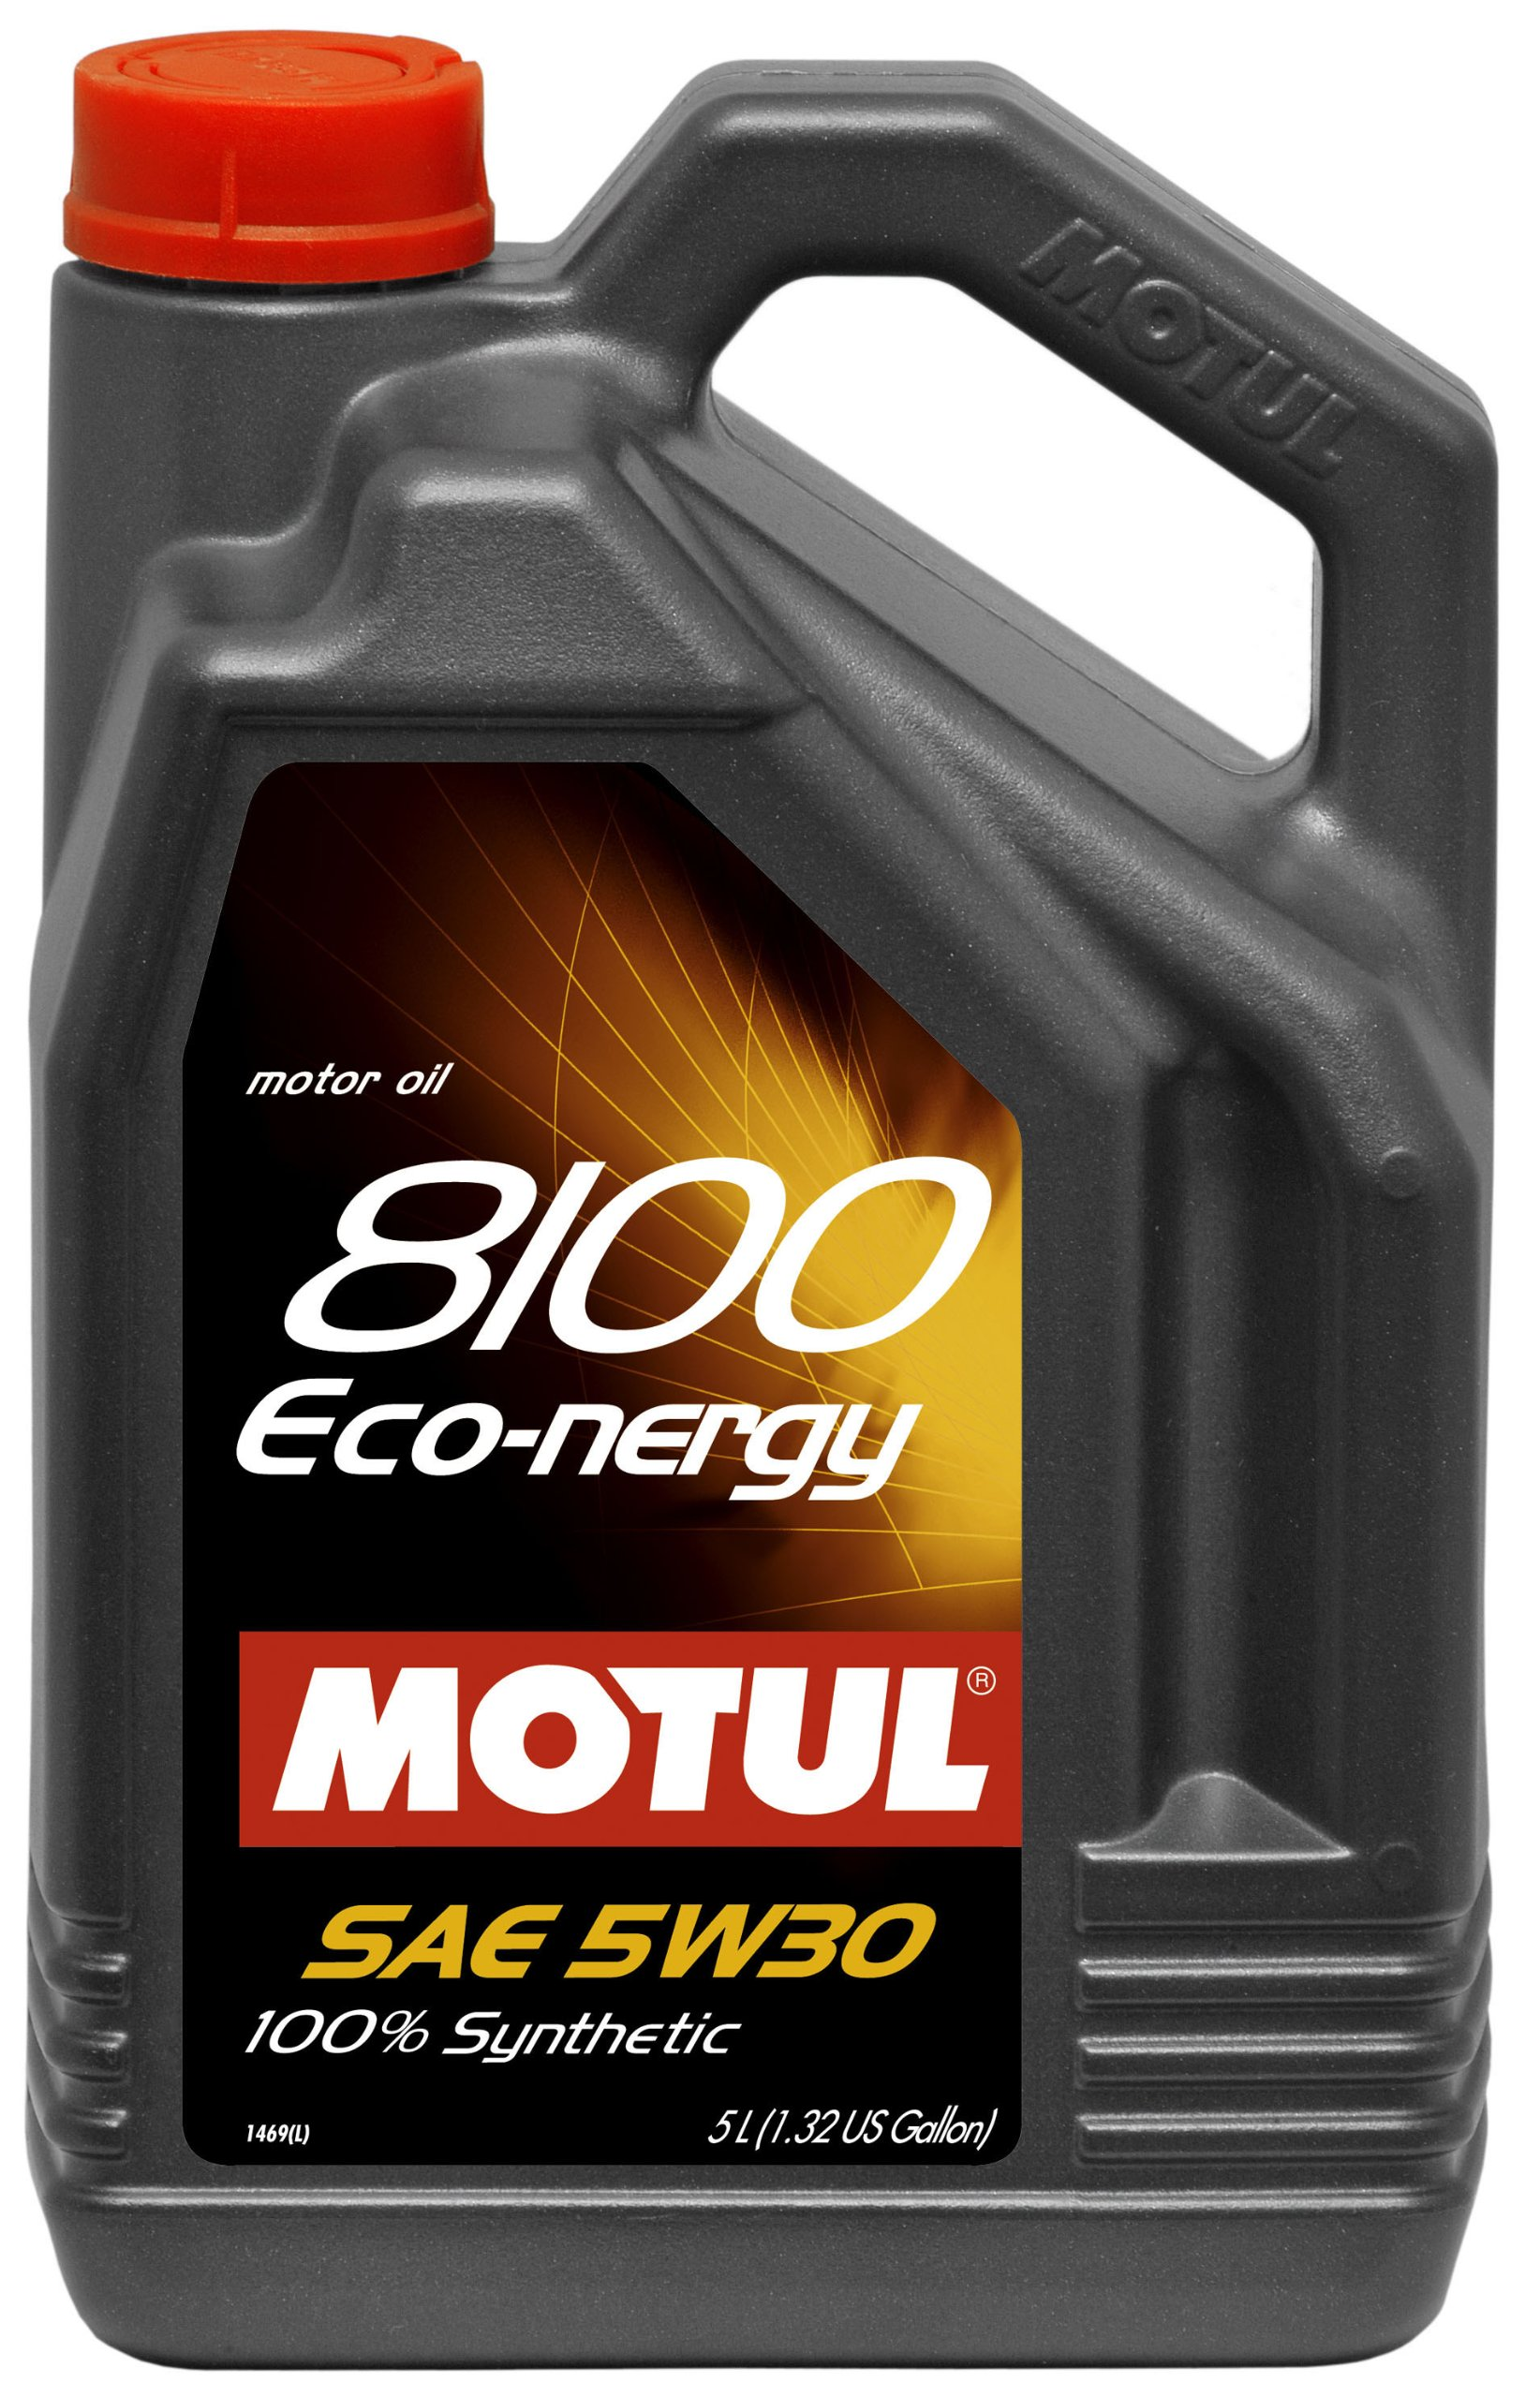 Motul MTL102898 007229 8100 Eco-nergy 5W-30 100 Percent Synthetic Fuel Economy Gasoline and Diesel Lubricant - 5 Liter